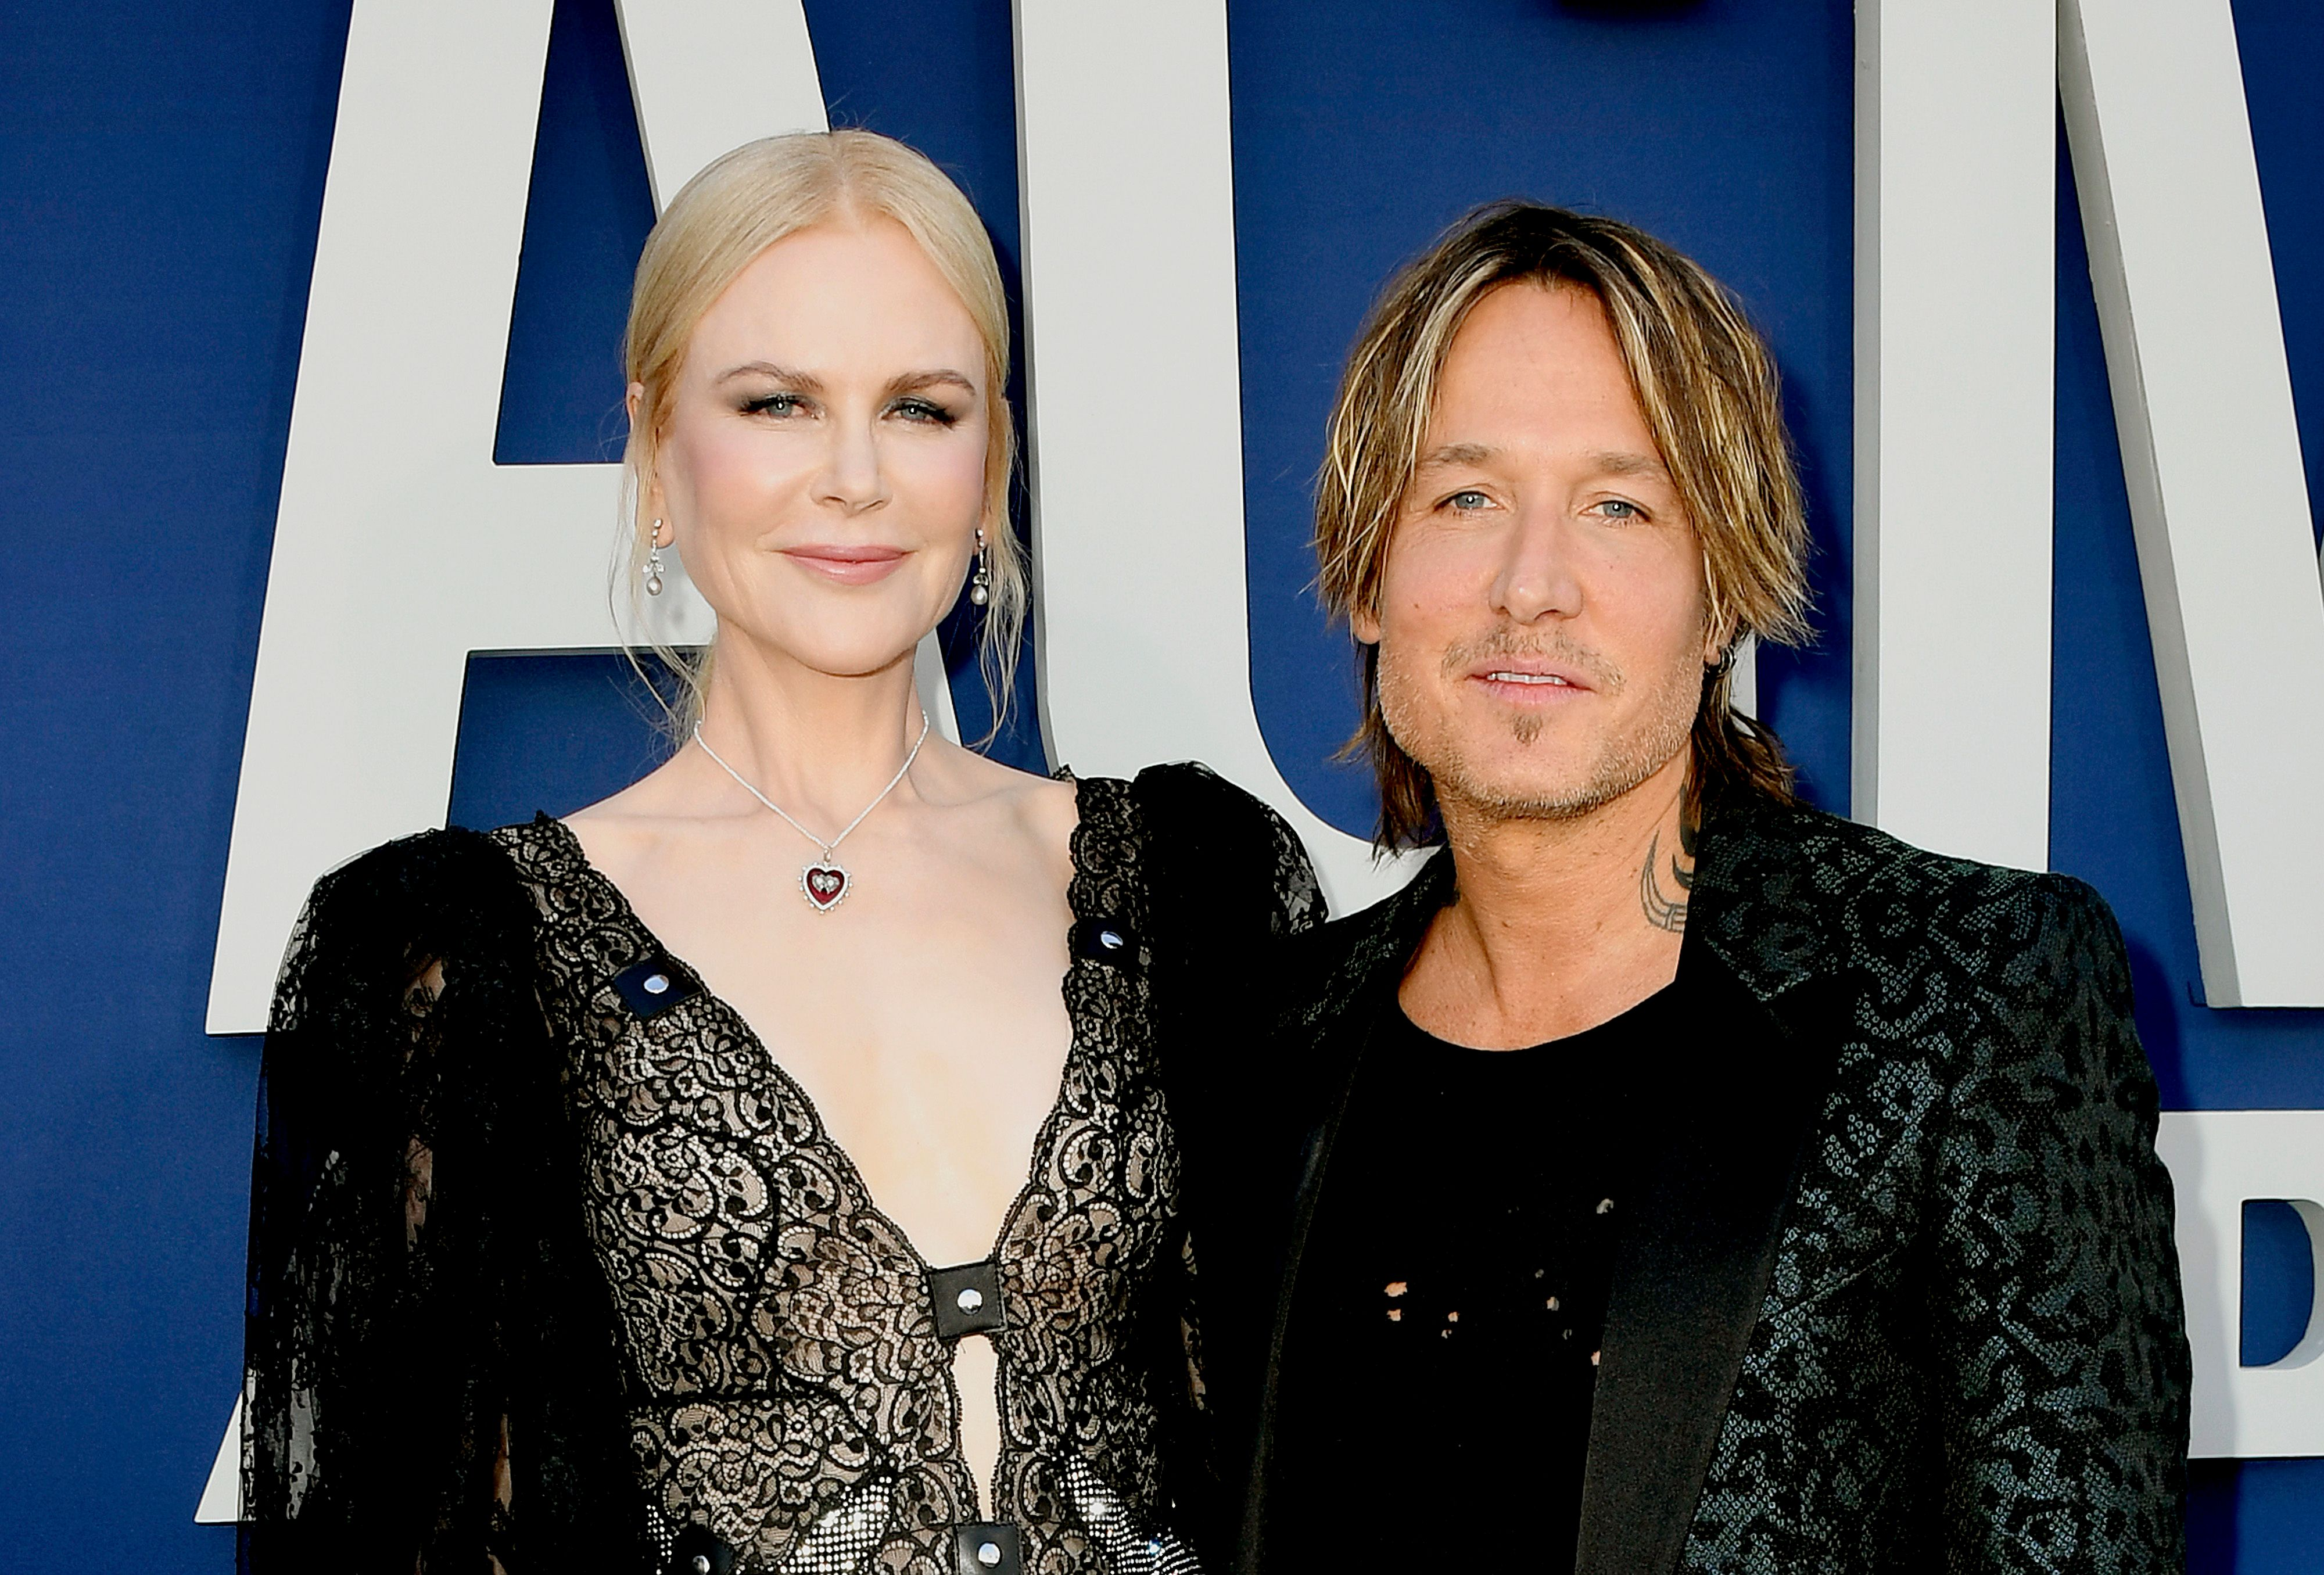 Nicole Kidman and Keith Urban at the 54th Academy Of Country Music Awards at MGM Grand Hotel & Casino on April 07, 2019 | Photo: Getty Images